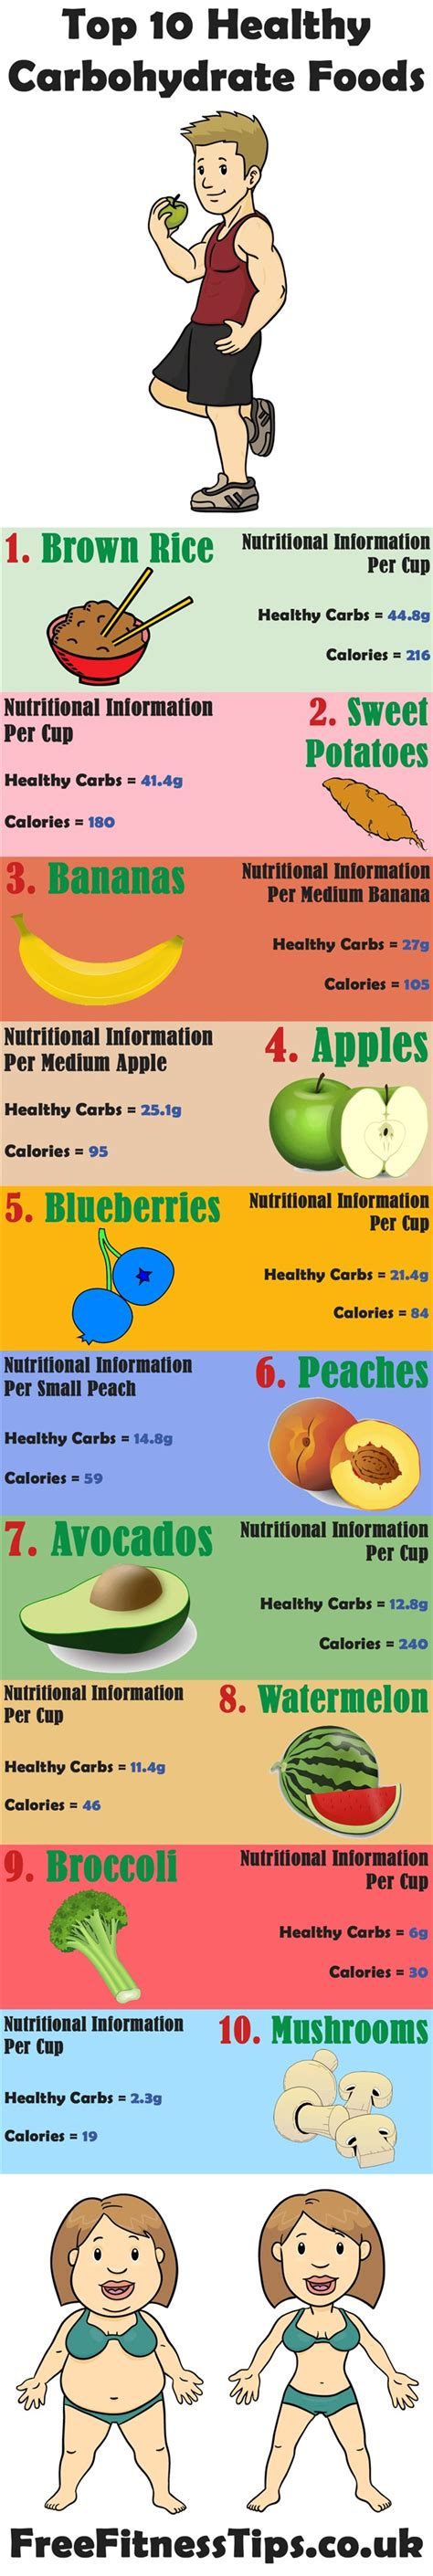 carbohydrates healthy foods top 10 healthy carbohydrate foods infographic free